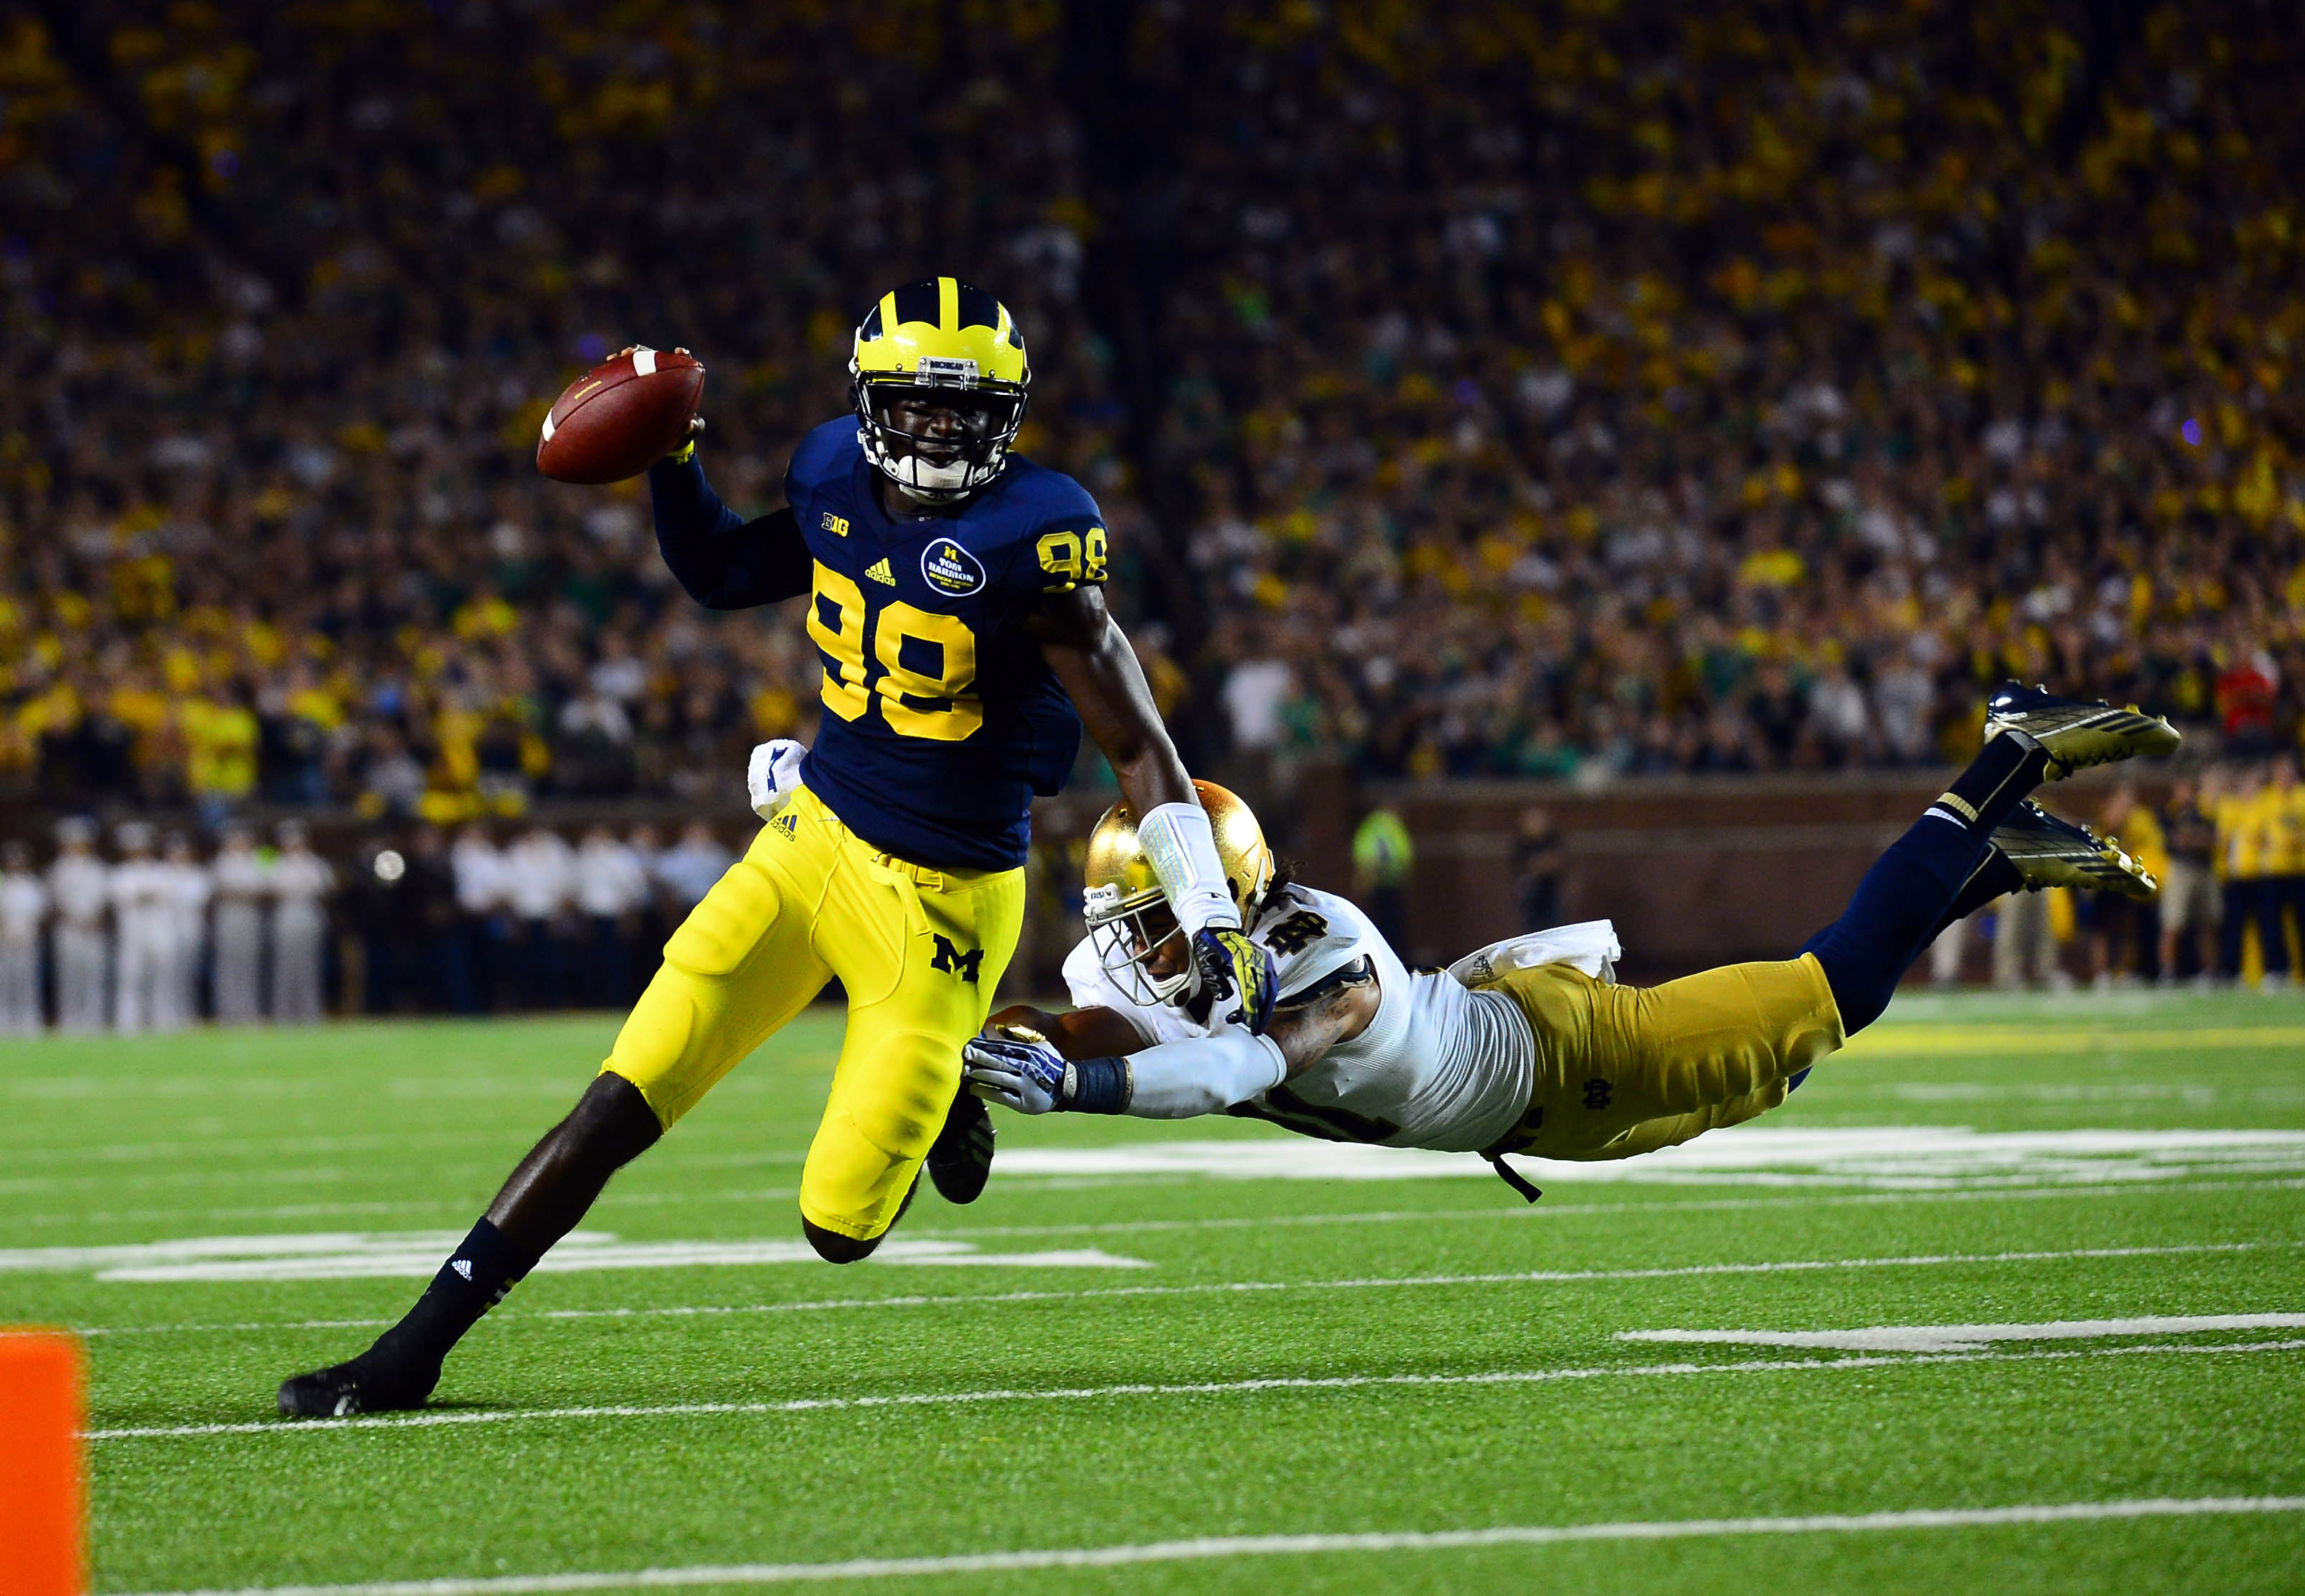 Projected 2013 BCS standings, Week 3: Oregon tops Alabama, but watch out for Michigan